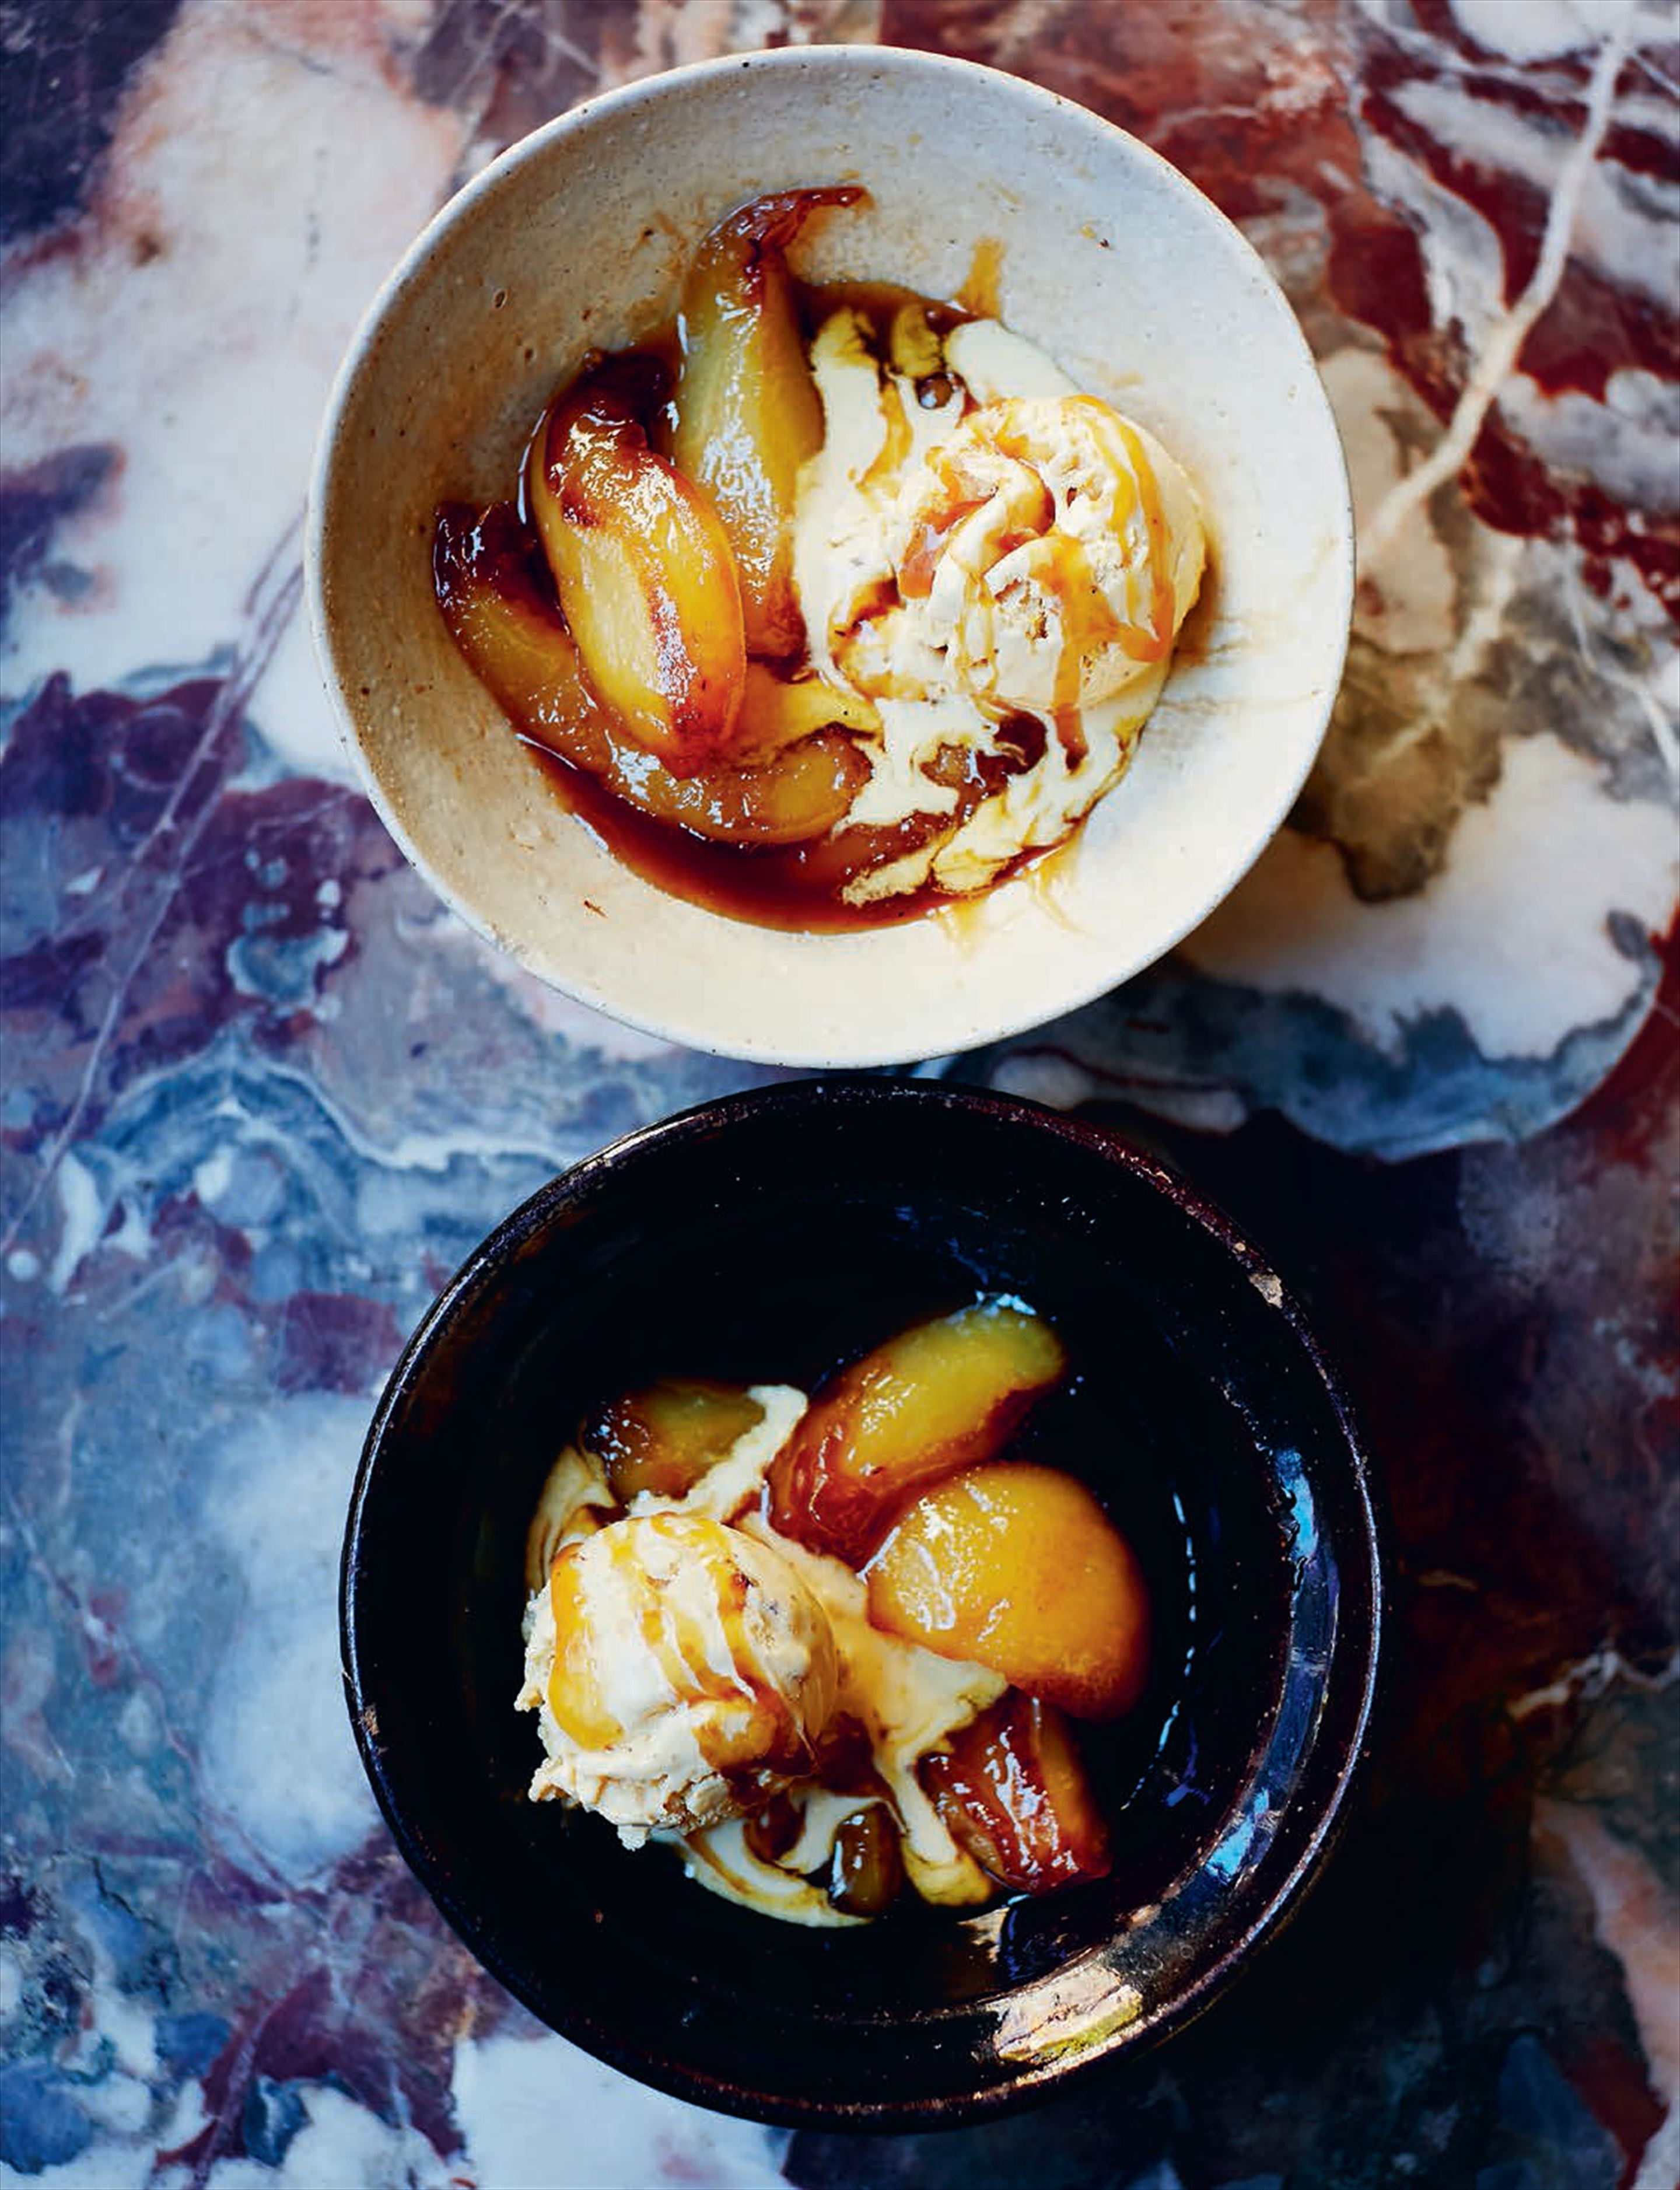 Caramelised pears with hazelnut ice cream